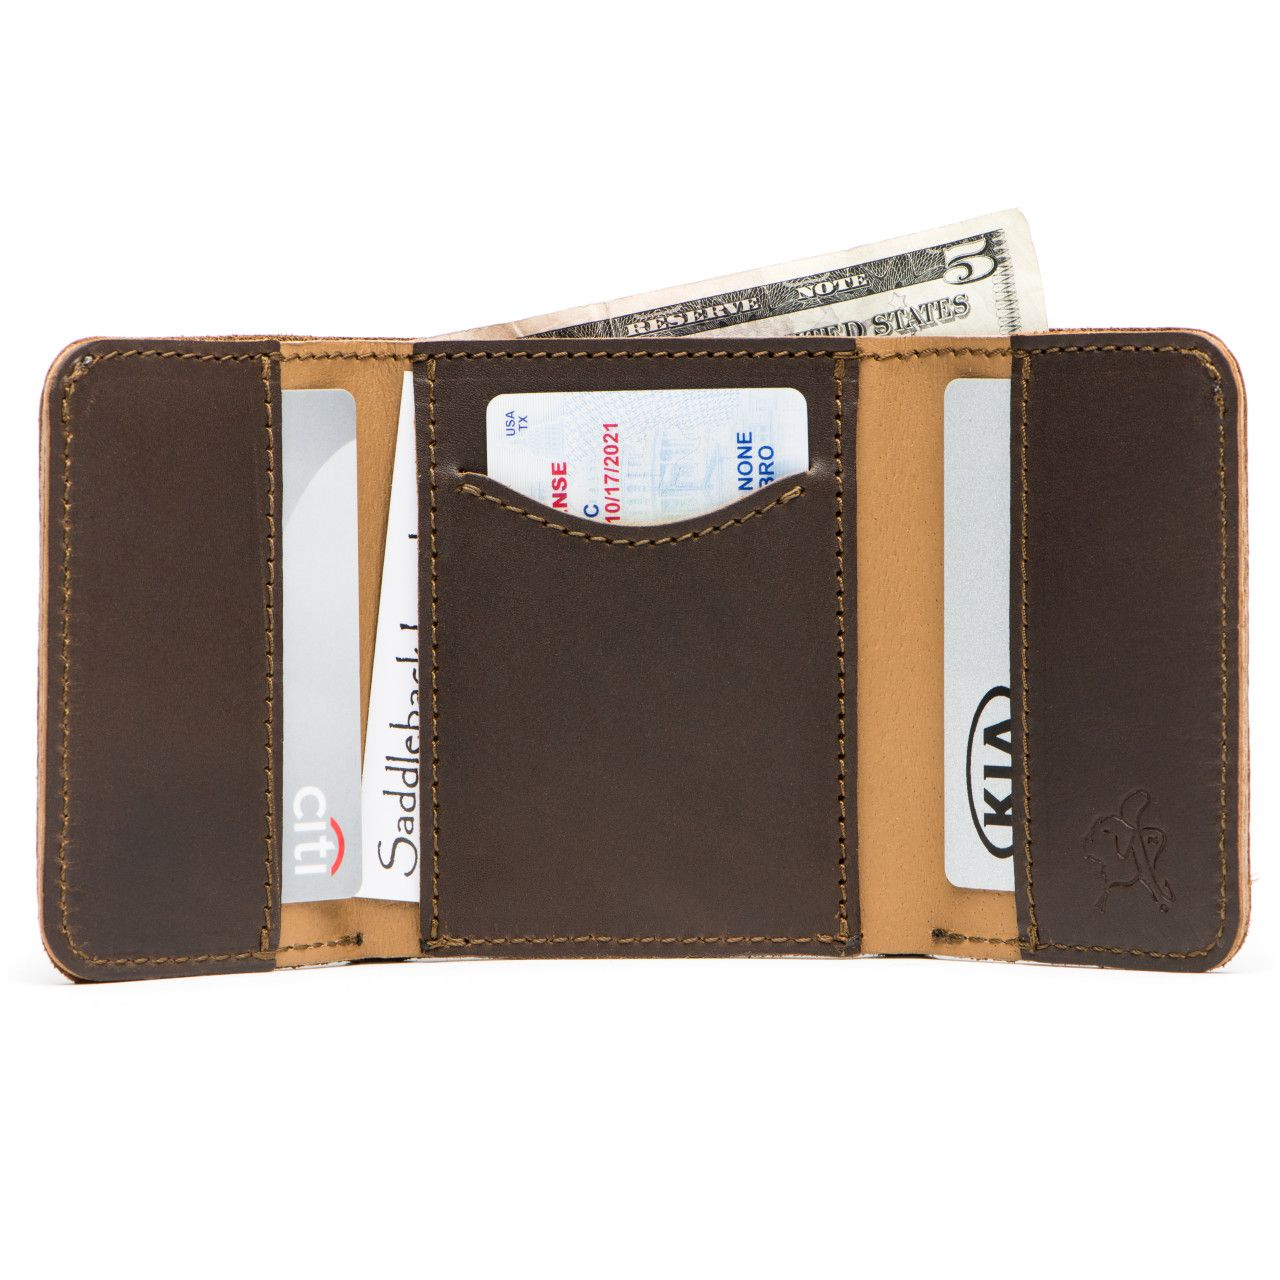 leather trifold wallet in dark coffee brown leather